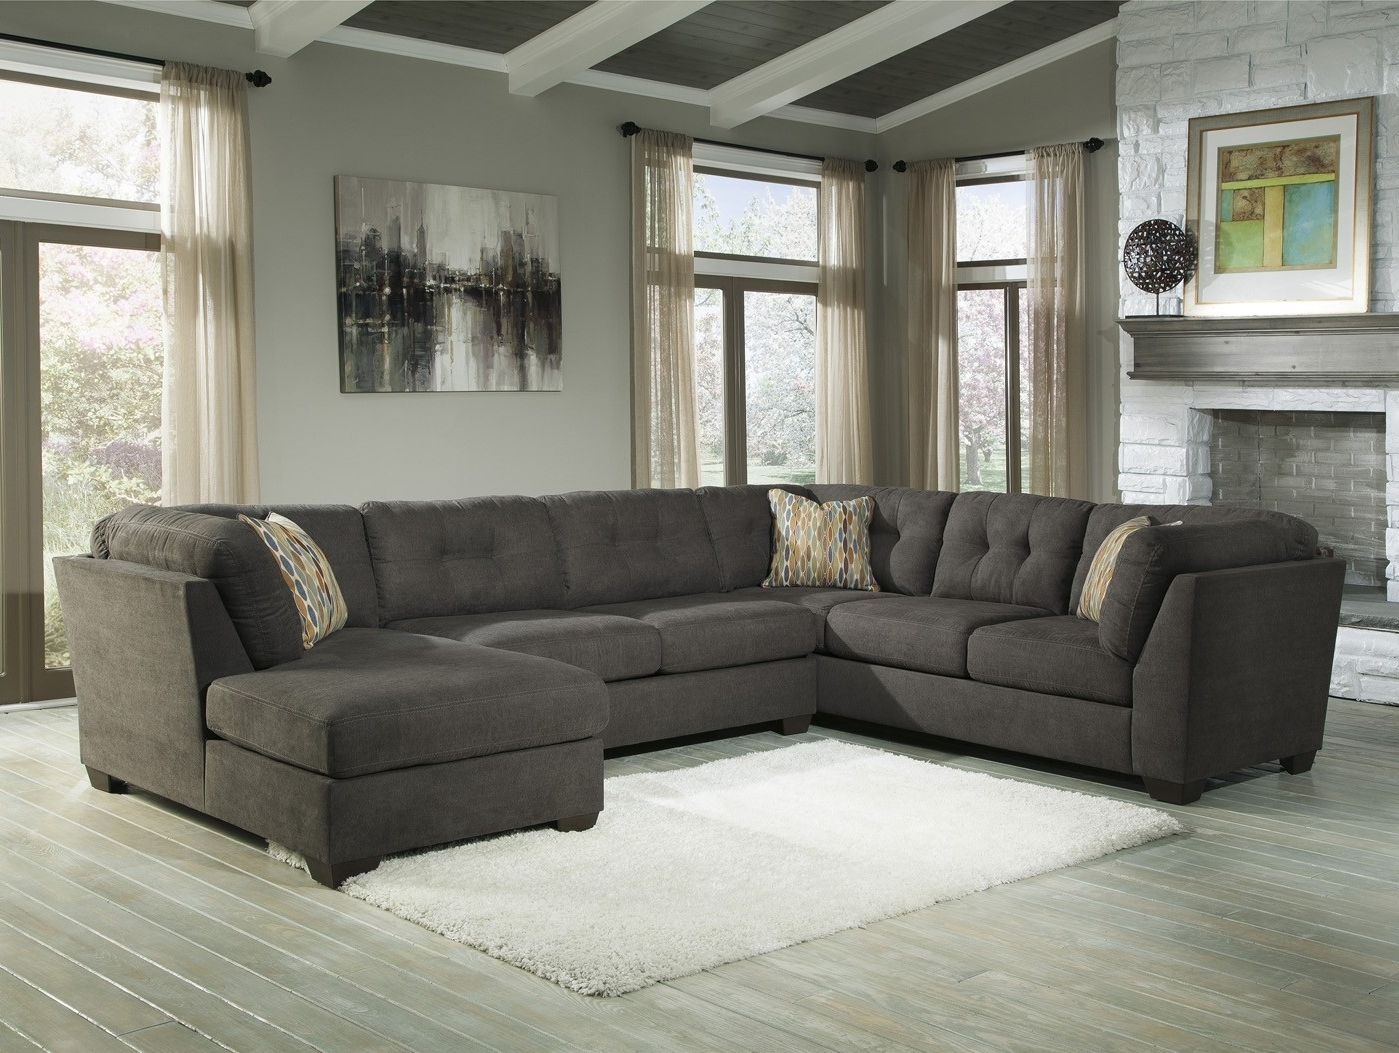 Elk Grove Ca Sectional Sofas Within Best And Newest Delta City Steel 3 Piece Sectional Sofa With Right Arm Facing (Gallery 7 of 20)